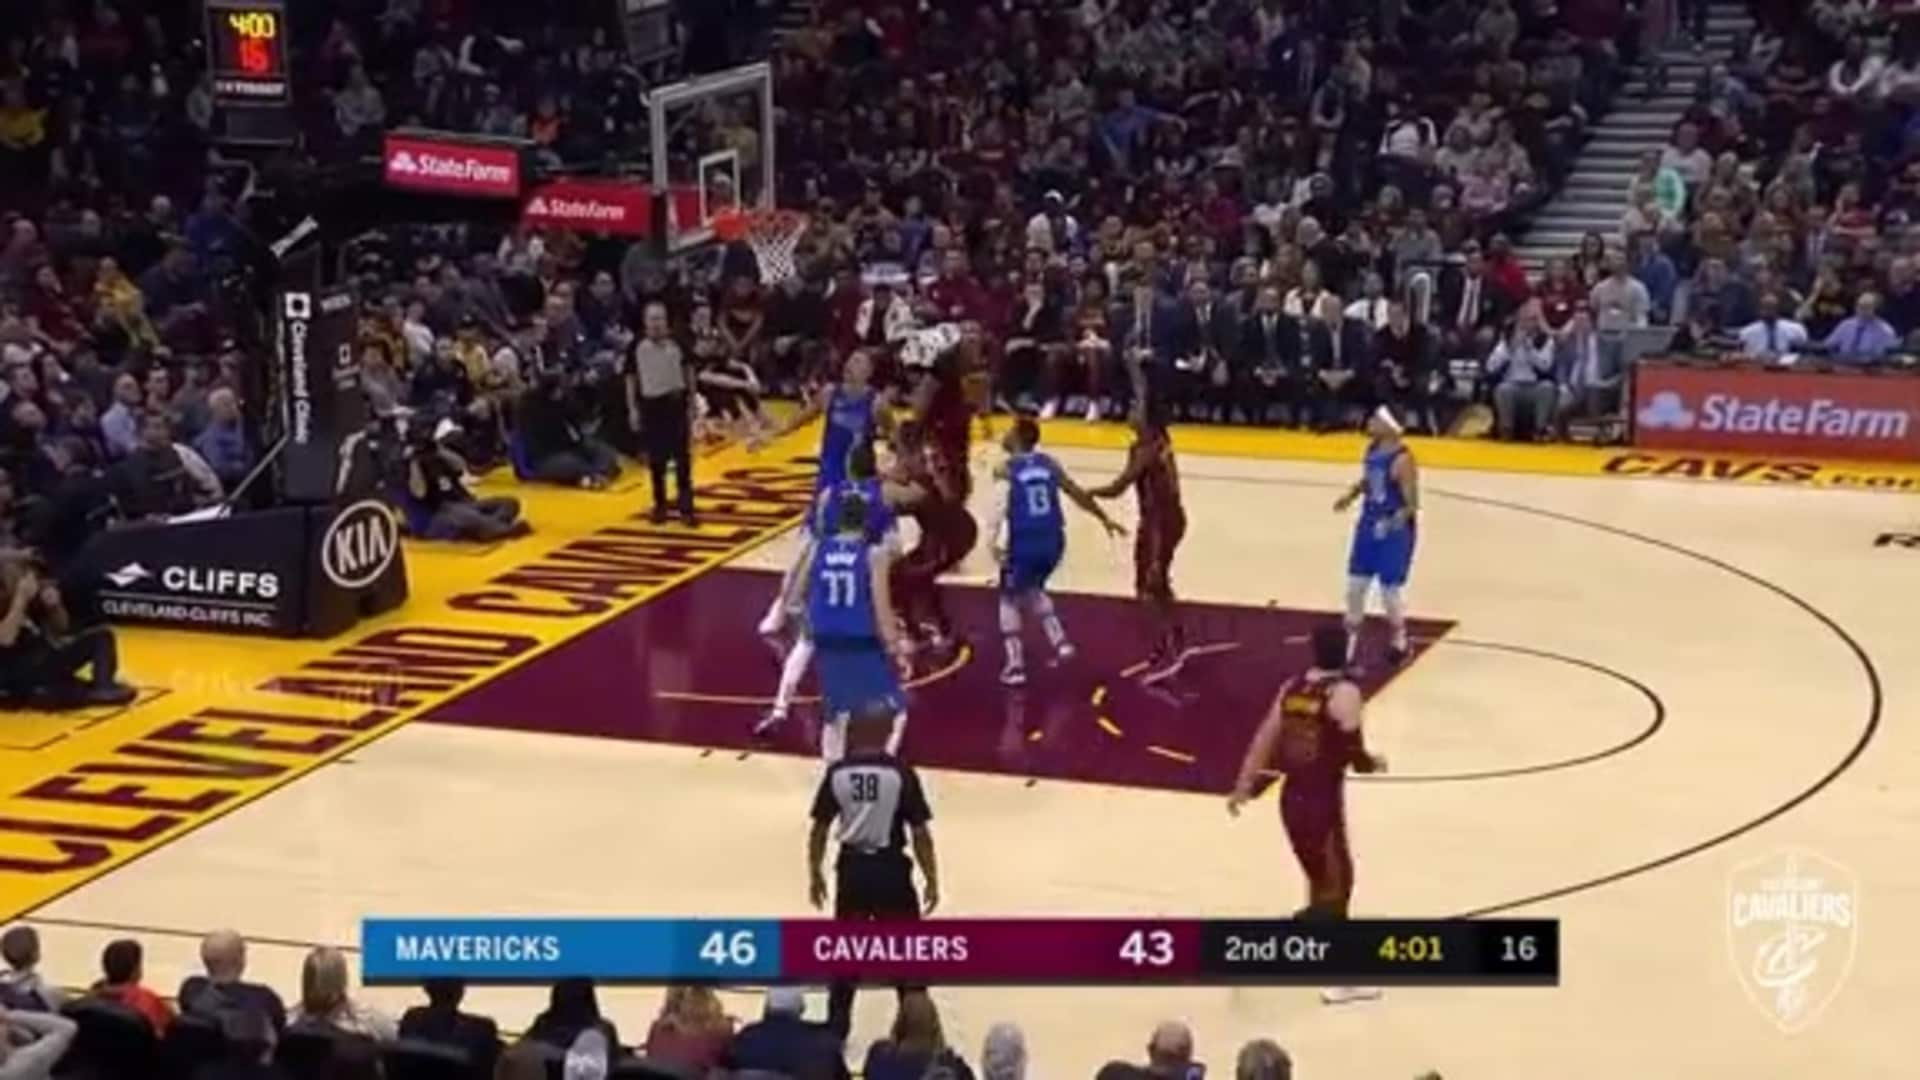 Sexton Fires Up a Floater